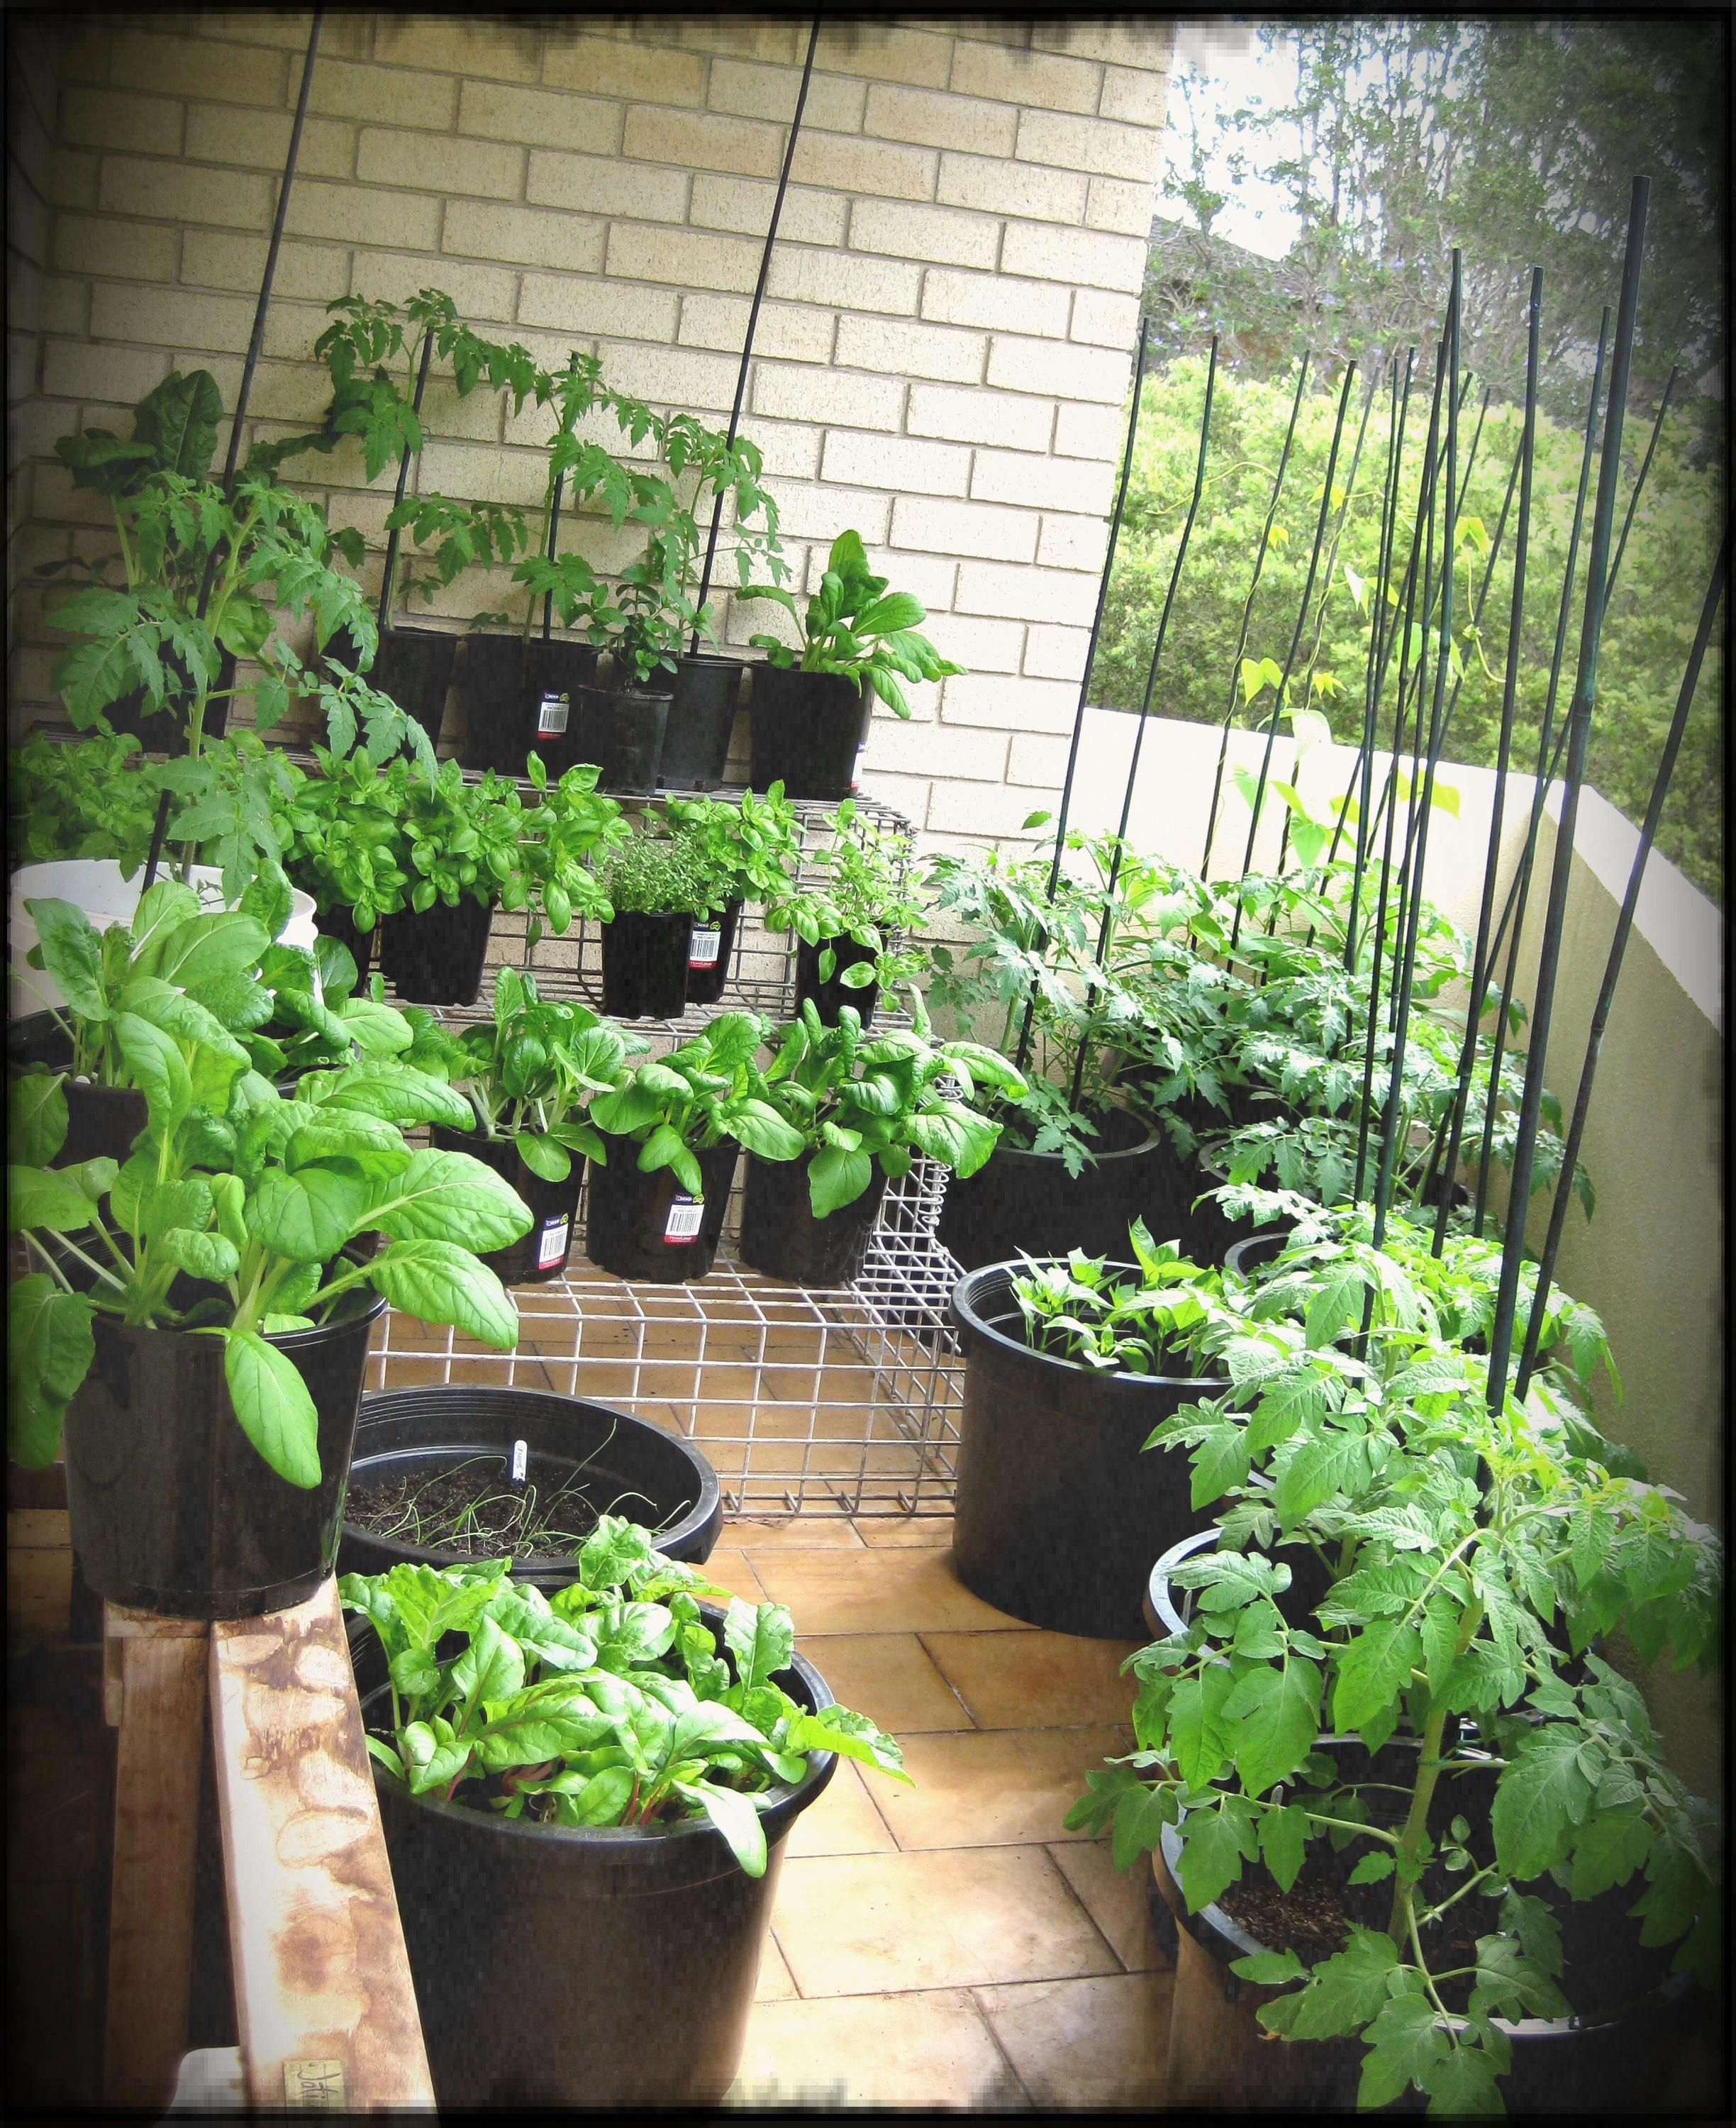 Urban Vegetable Gardening For Beginners: So In Seed Selection The Entire Plant Is To Be Thought